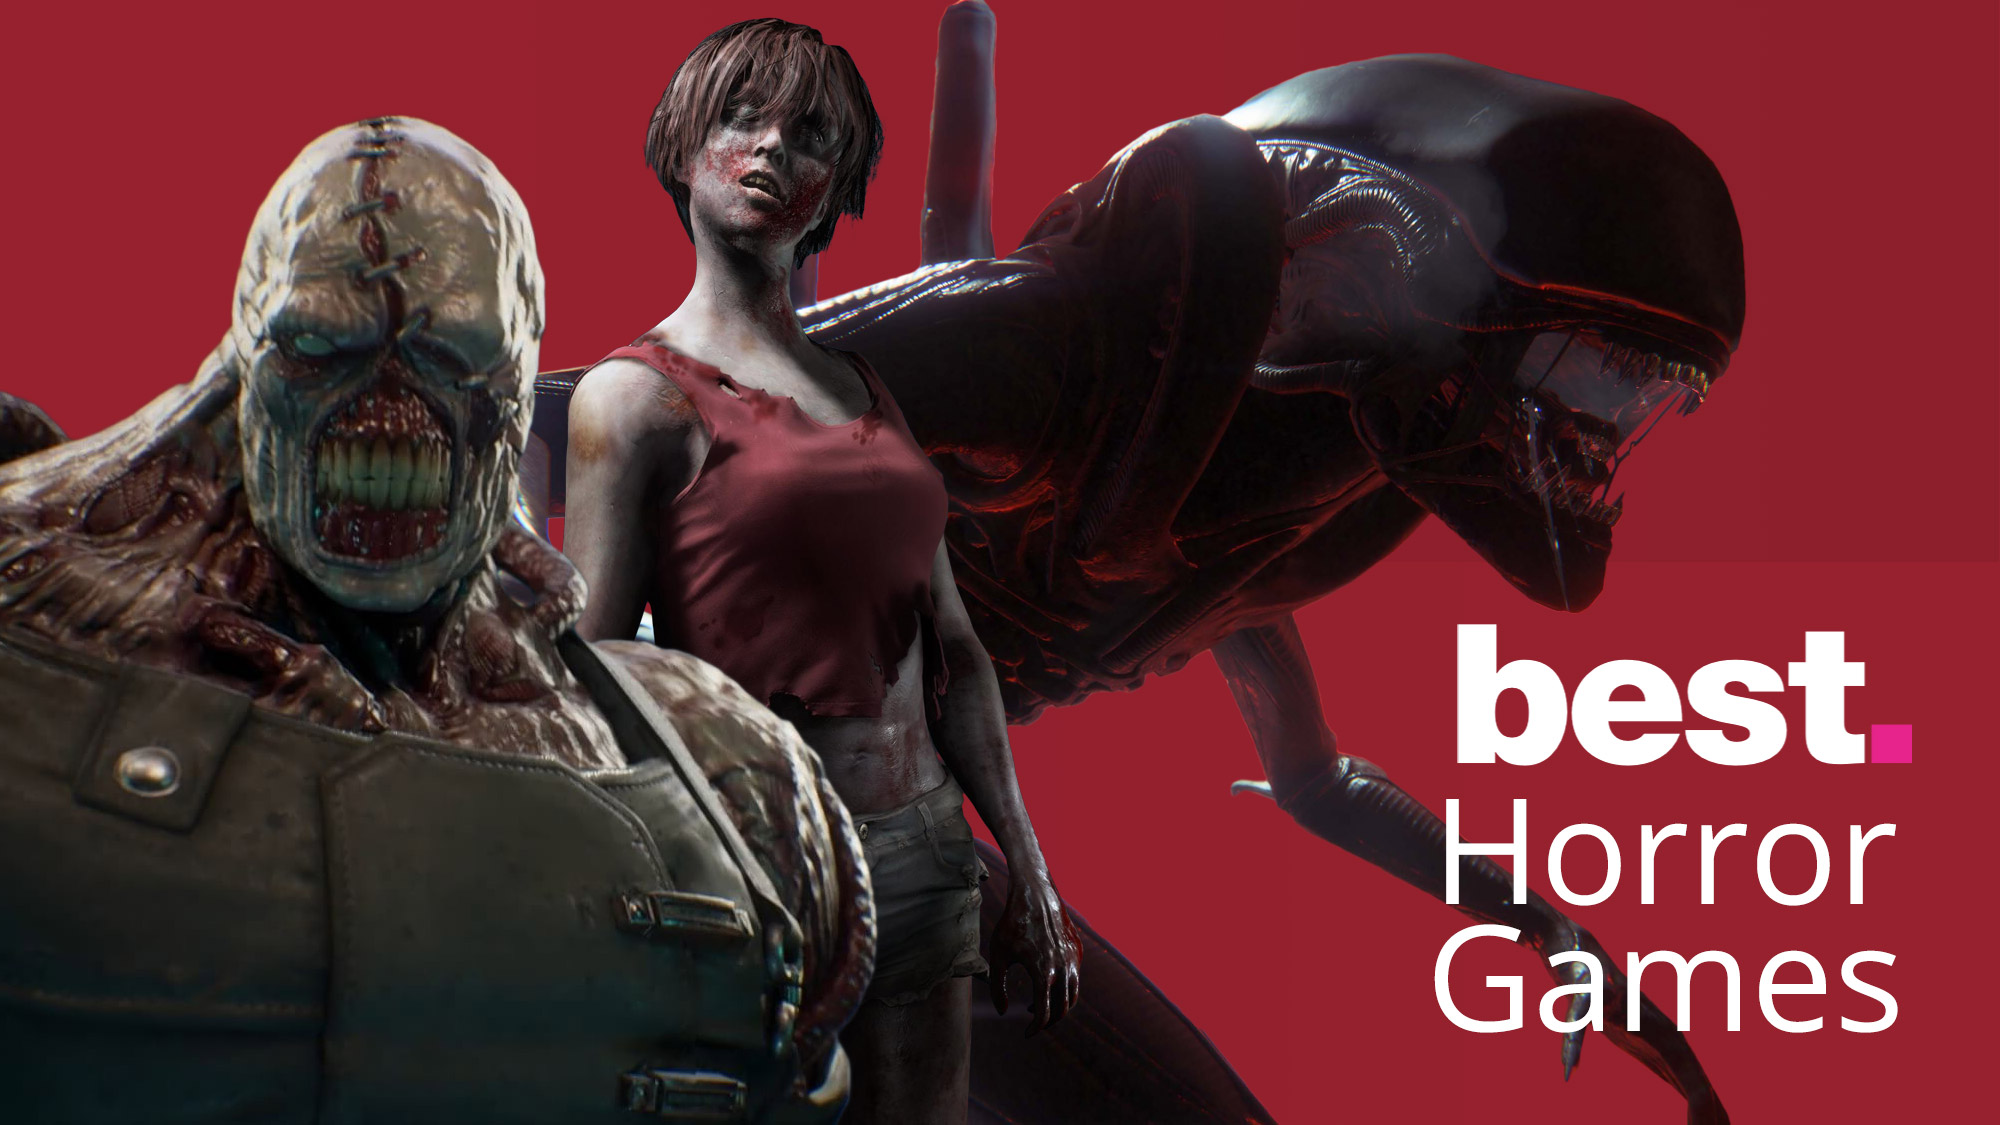 Best Horror Games 2020 The Scariest Games To Play On Console And Pc Techradar